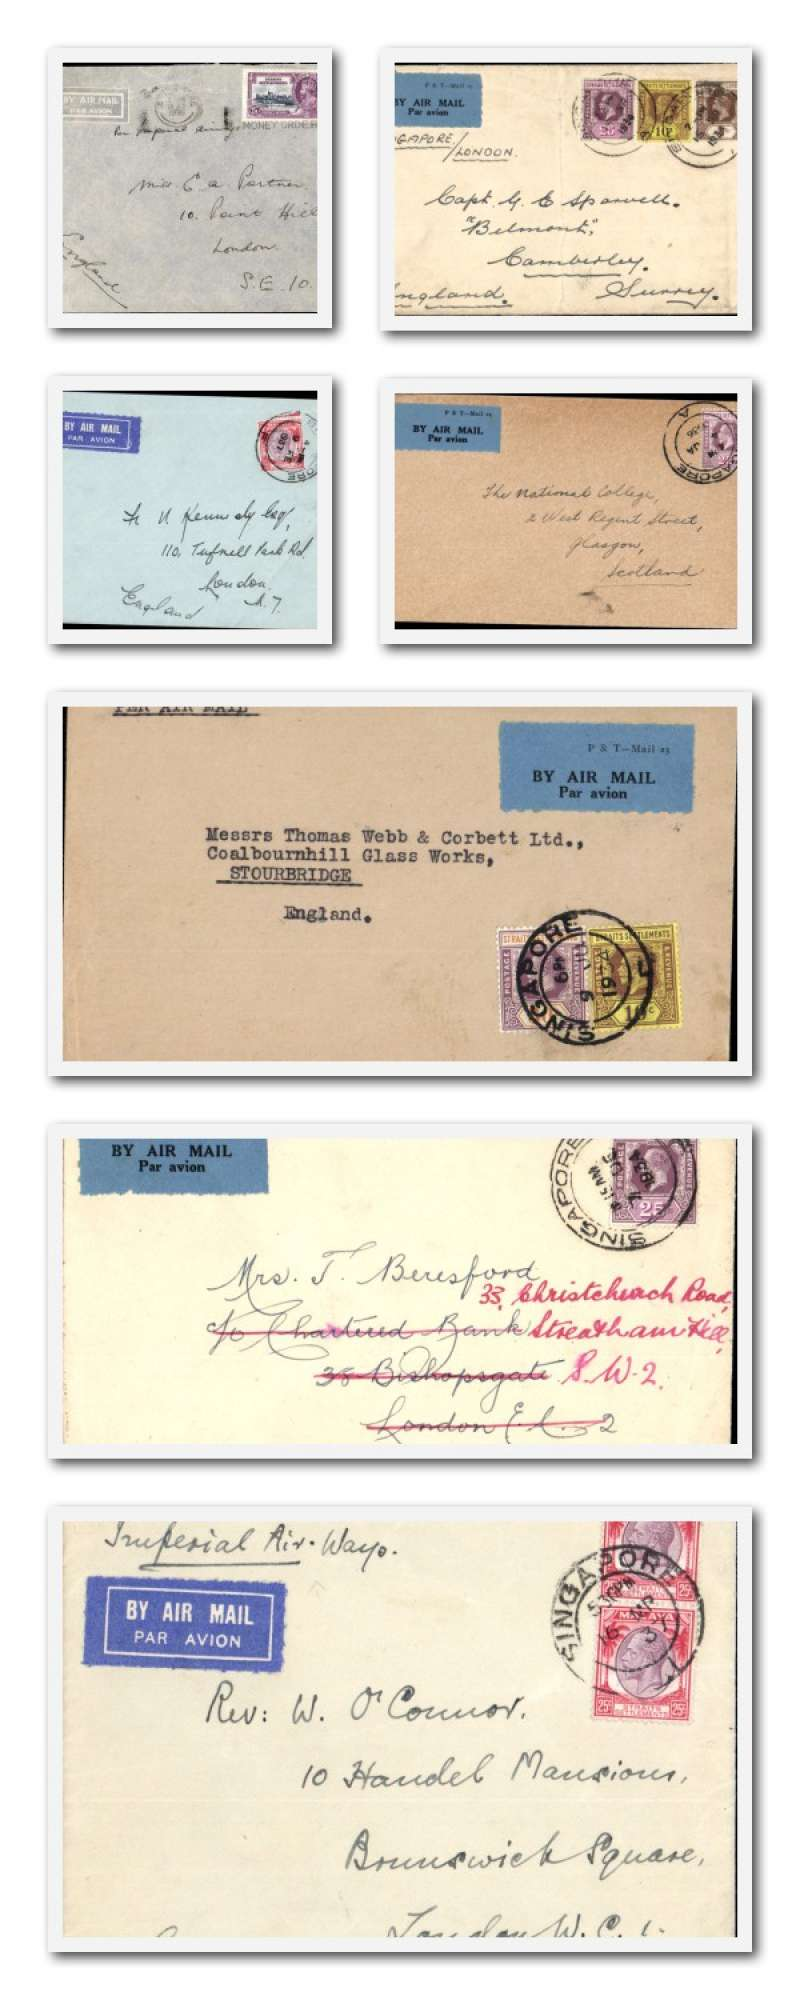 (Collections) Singapore to London, collection of seven commercial airmail covers 1934-37, six to London, one to Scotland, most 25c frankings, one 50c double rate. Good for tracking IAW departure dates, flight numbers, names of airplanes on various legs, and any delays, ref  'Wingent Aircraft Movements on IAW Eastern Route 1927-37'